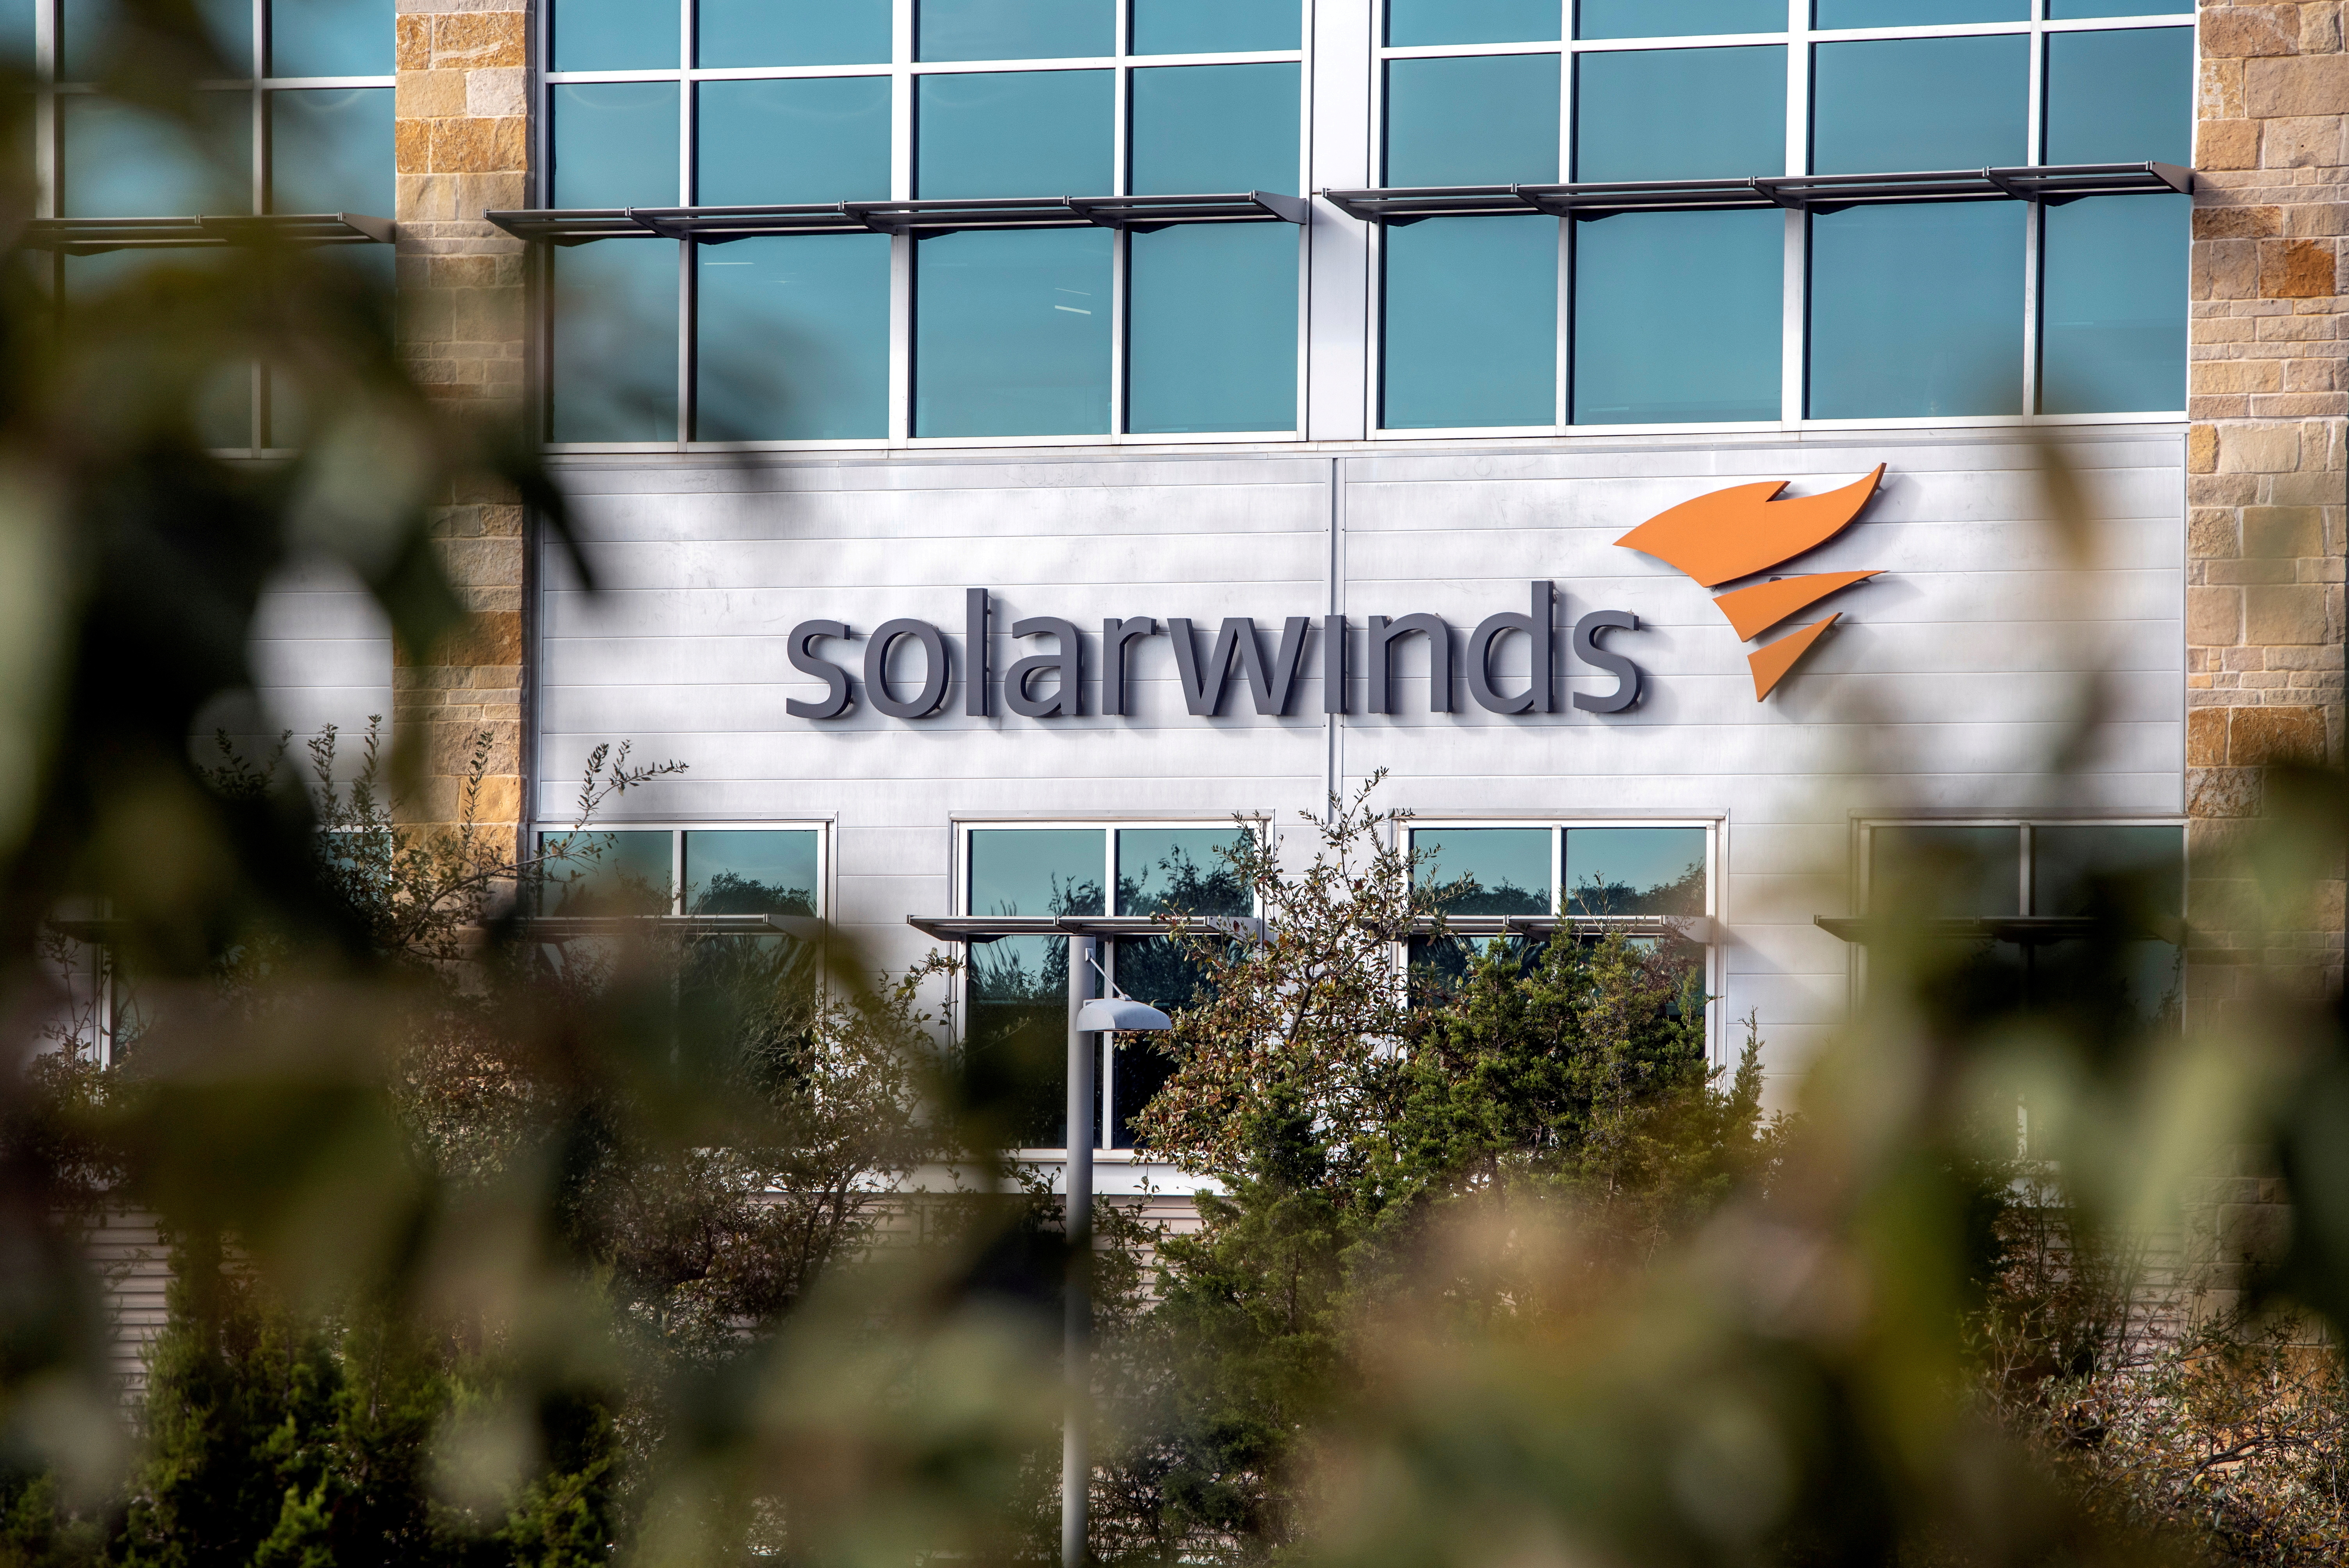 The SolarWinds logo is seen outside its headquarters in Austin, Texas, U.S., December 18, 2020. REUTERS/Sergio Flores